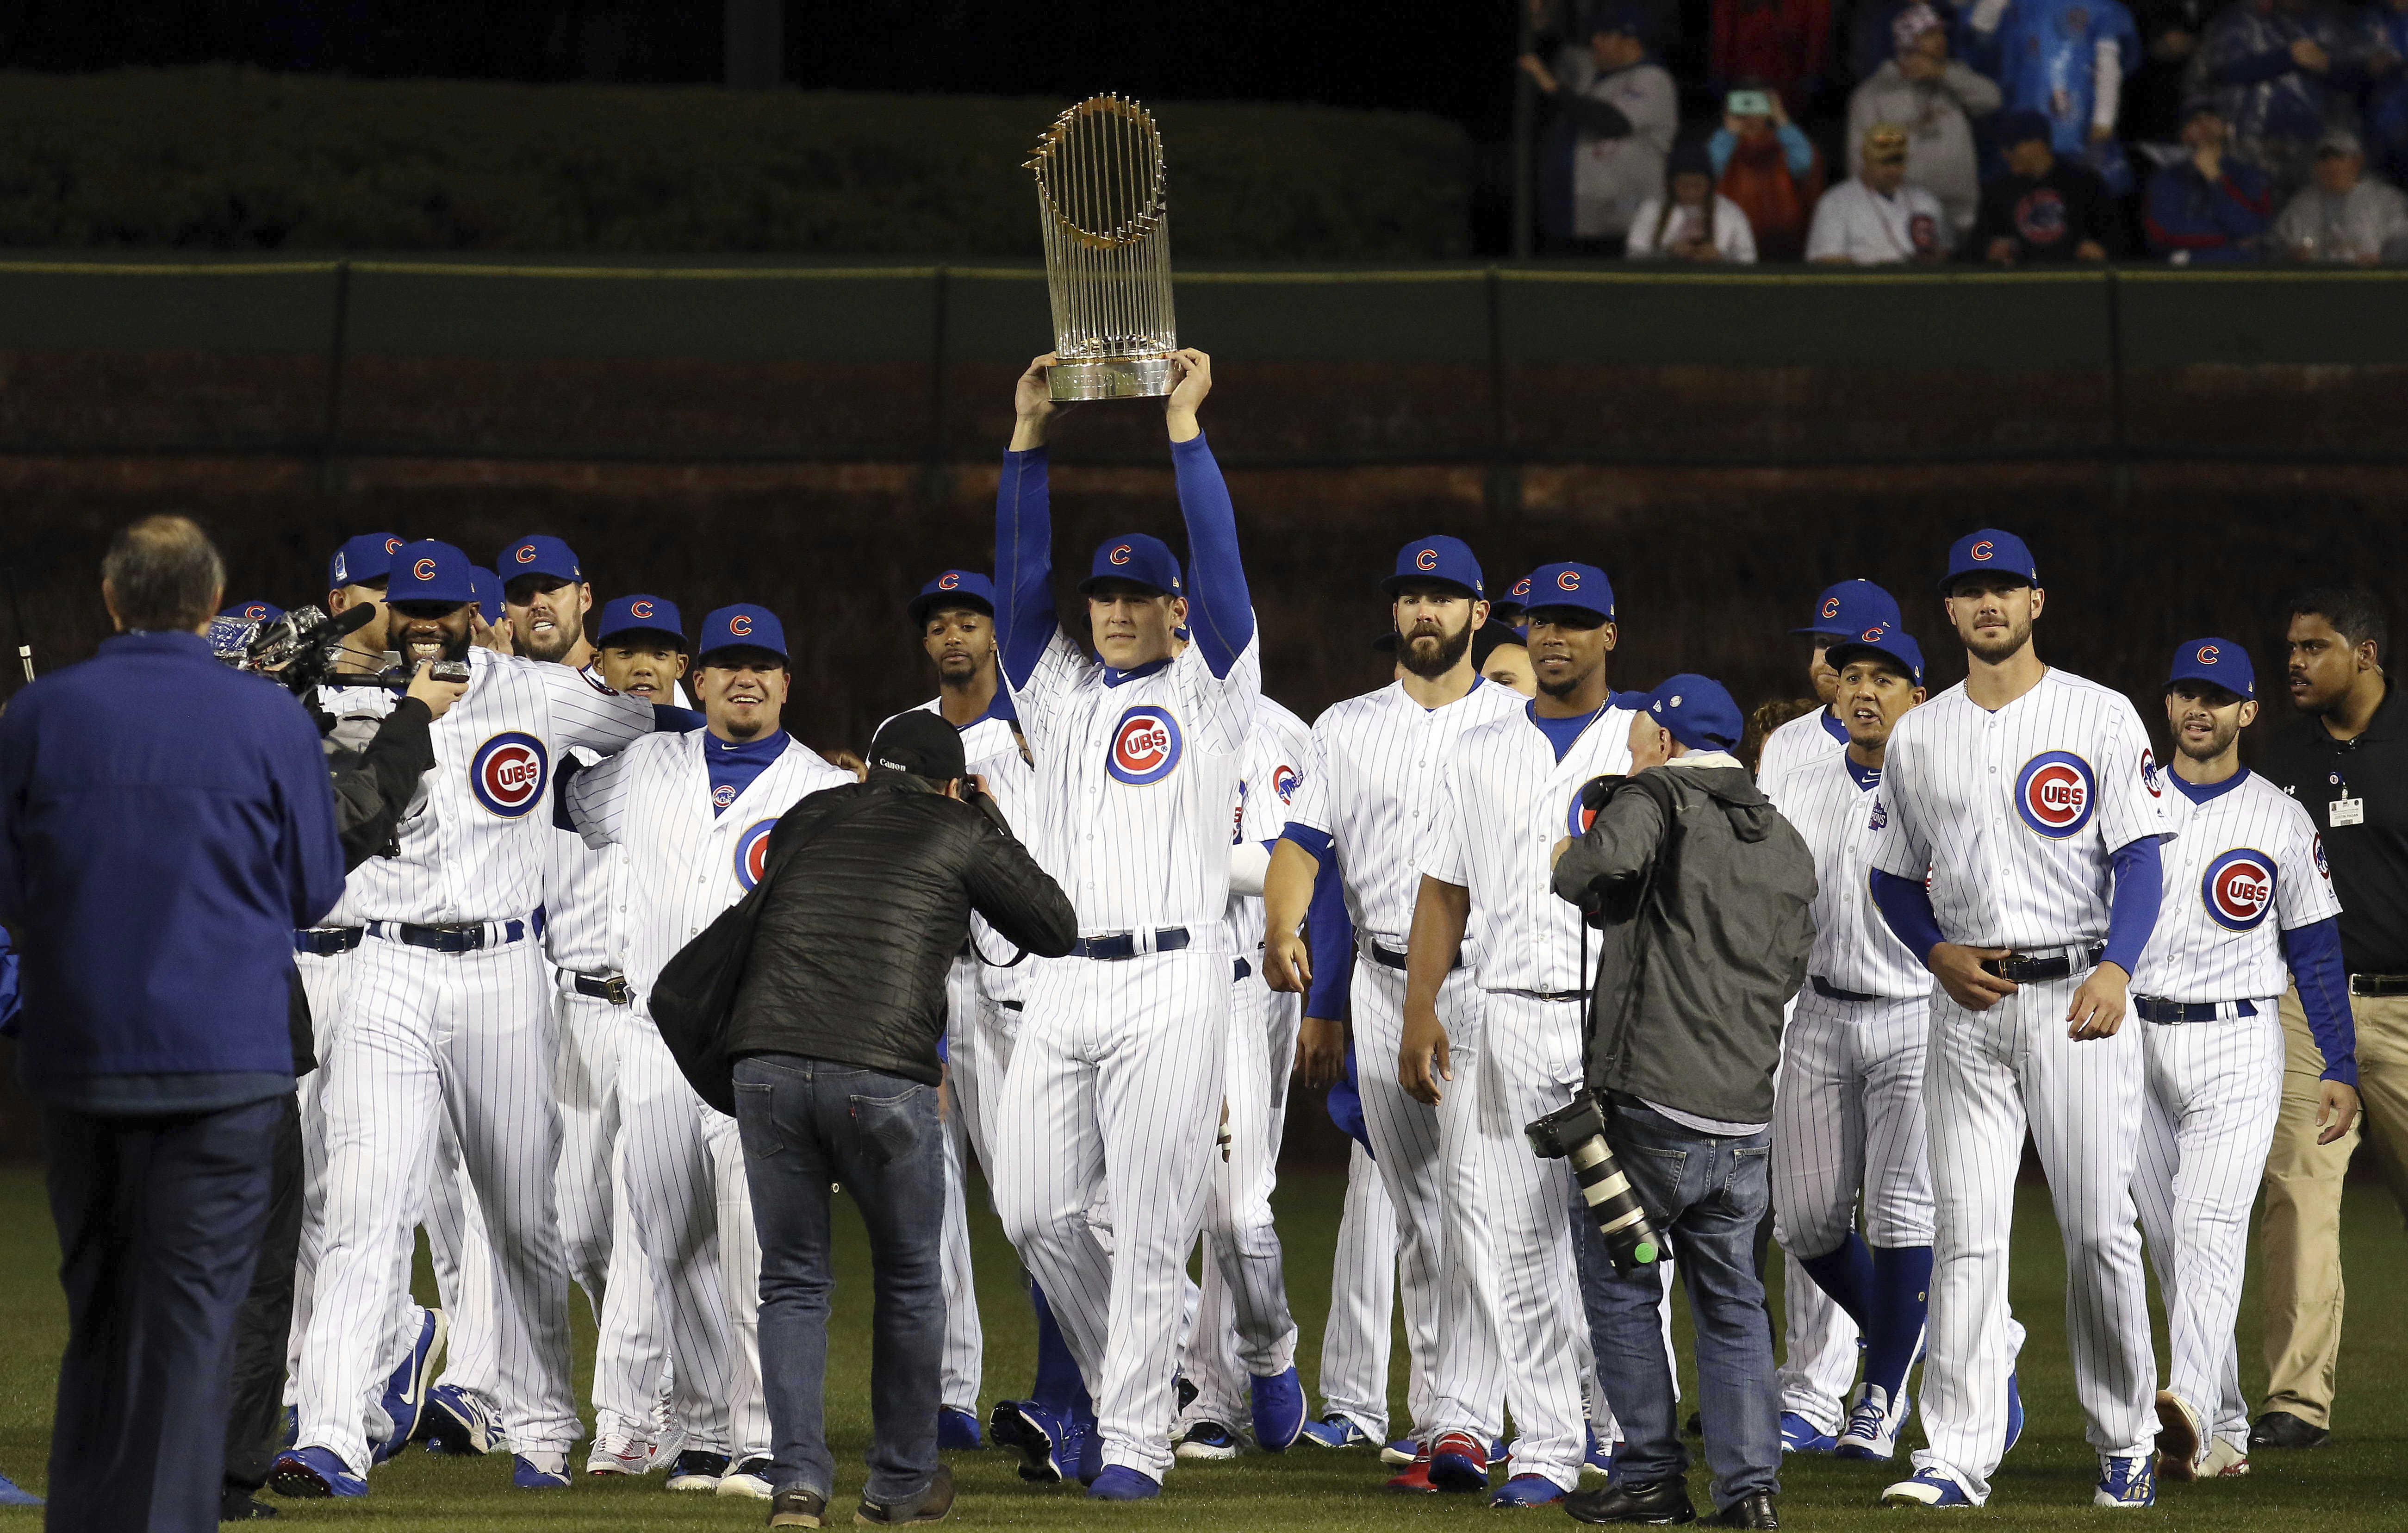 Chicago Cubs players walk the field carrying the 2016 World Series Championship trophy before a baseball game between the Chicago Cubs and the Los Angeles Dodgers on home opening day, Monday, April 10, 2017, in Chicago. (Steve Lundy/Daily Herald via AP)